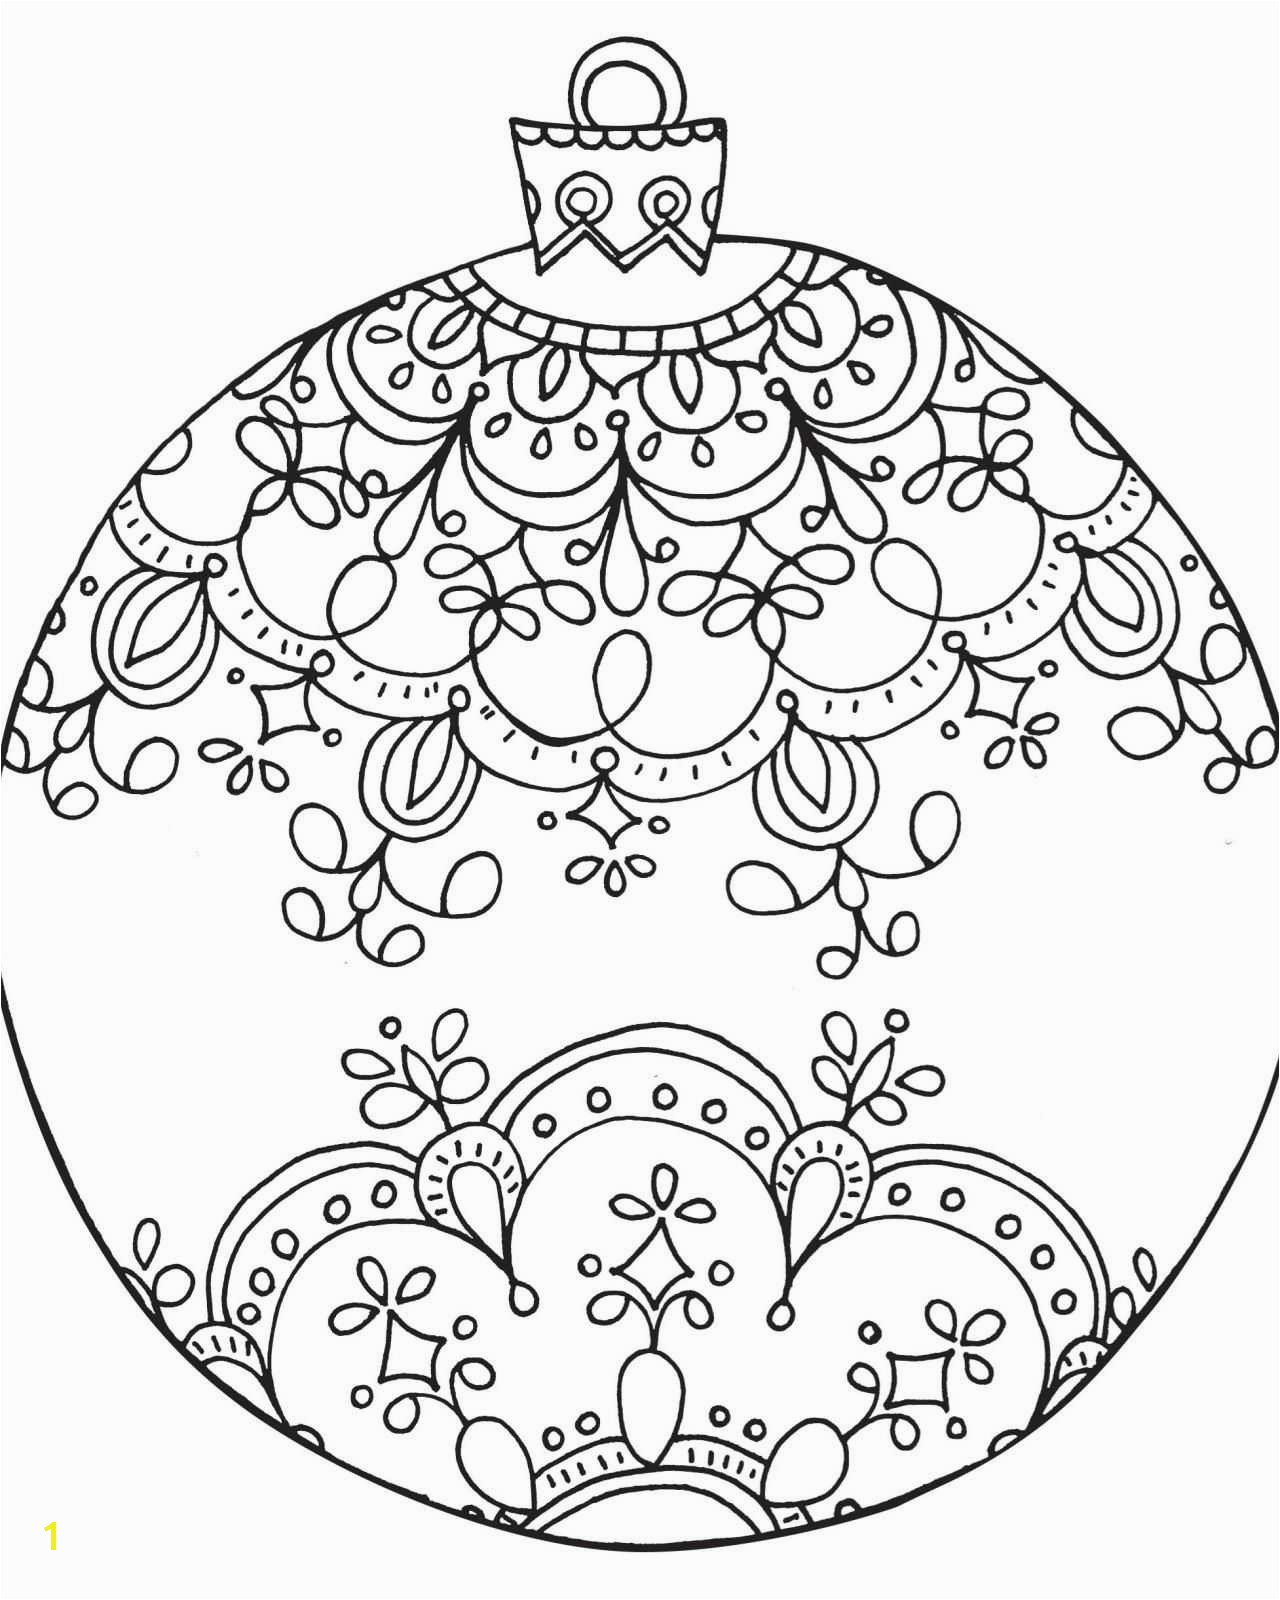 Christmas Ornament Coloring Pages Baby Coloring Pages New Media Cache Ec0 Pinimg Originals 2b 06 0d